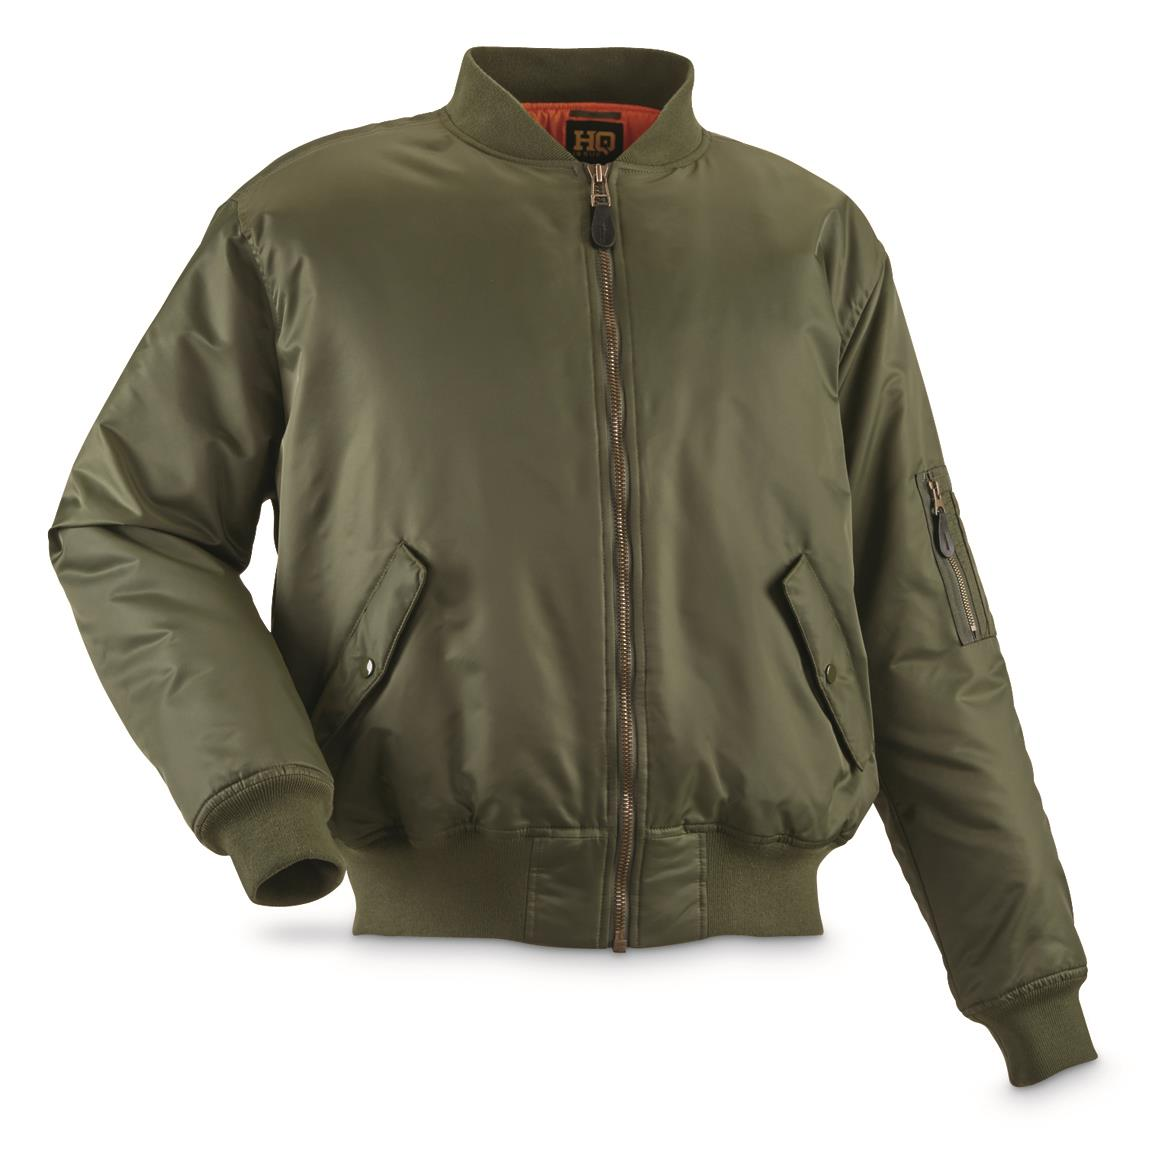 HQ Issue Men's Military Style MA-1 Flight Jacket, Sage Green